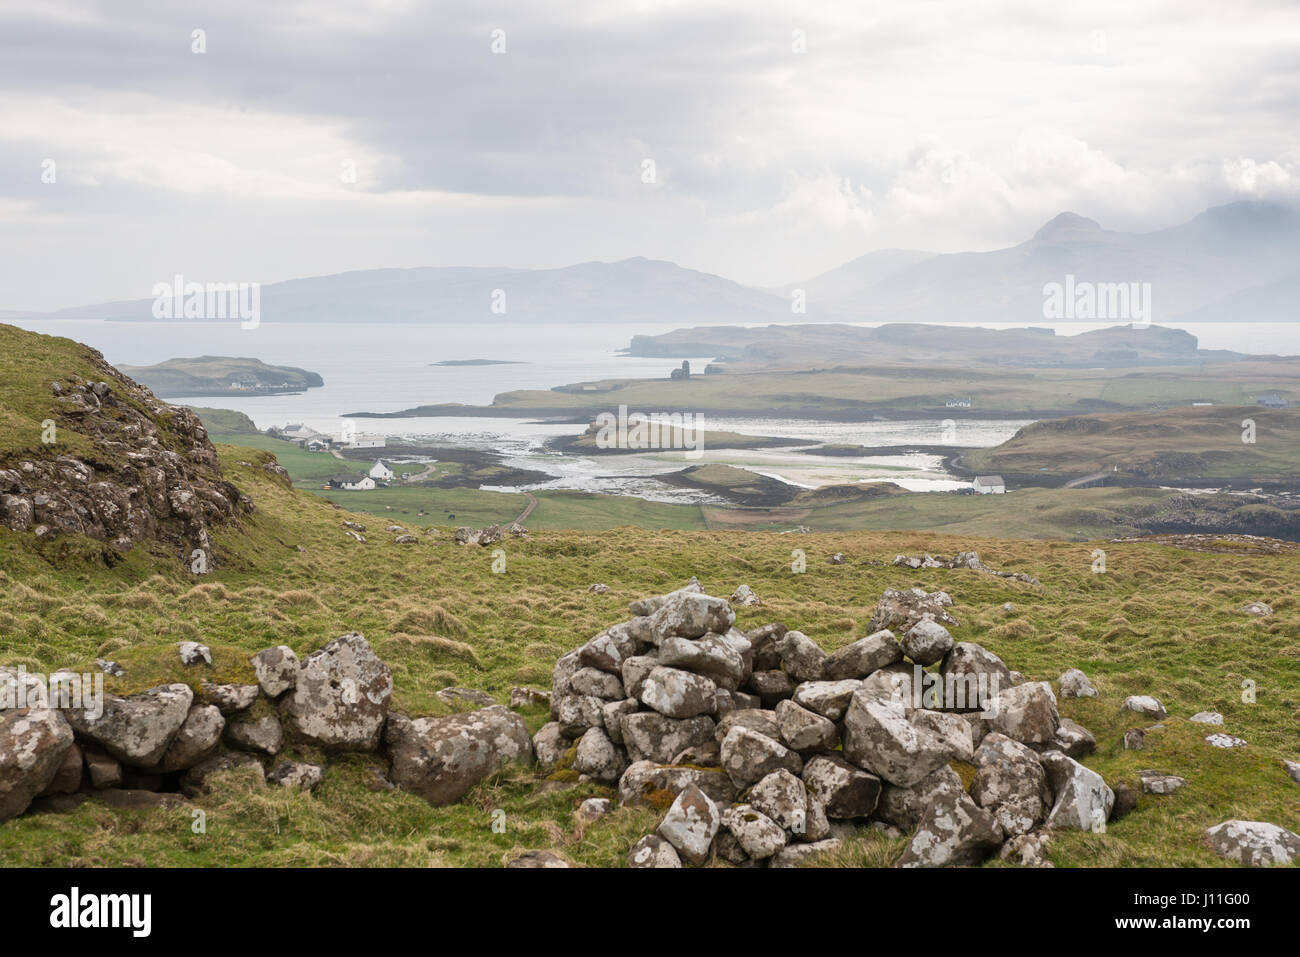 View from Canna Island of isolated houses and the island of Sanday. Inner Hebrides, Scotland - Stock Image